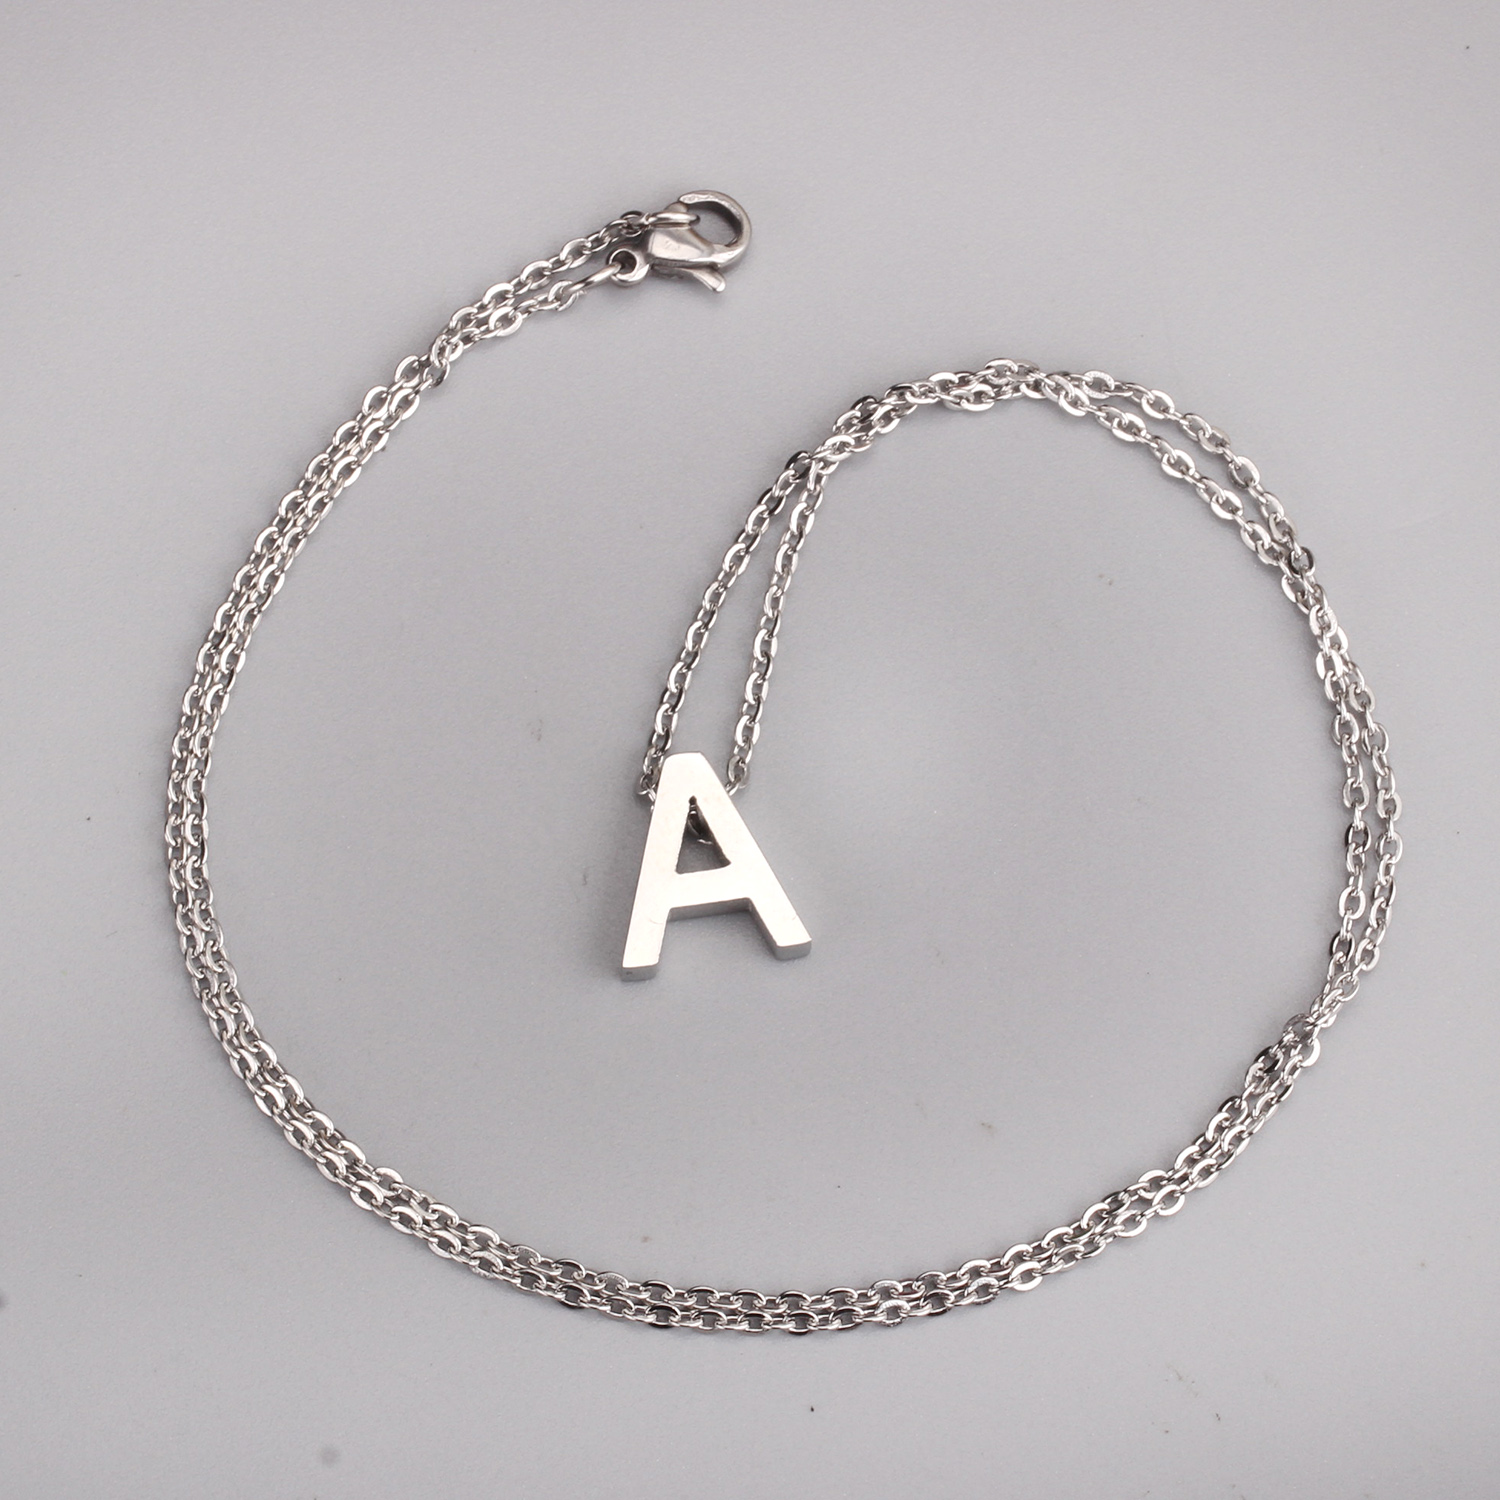 pendant necklace personalized buy stainless gold product com initial steel jewelry aliexpress choker custom letter name store from silver fashion